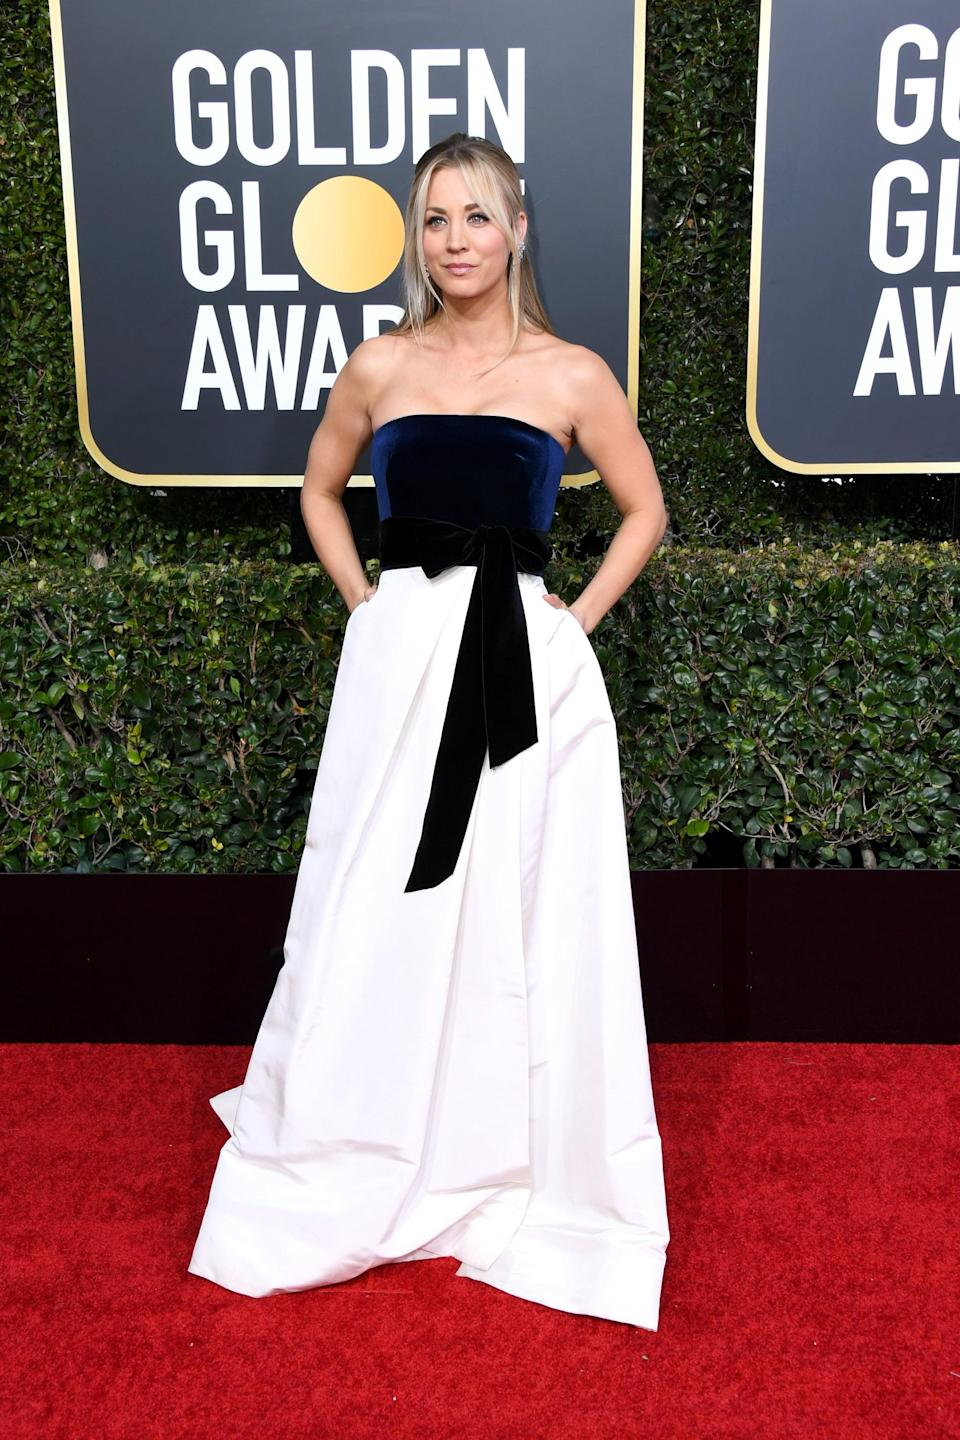 """<p><a rel=""""nofollow noopener"""" href=""""https://www.popsugar.com/fashion/Kaley-Cuoco-Dress-2019-Golden-Globes-45646240"""" target=""""_blank"""" data-ylk=""""slk:Wearing a Monique Lhuillier gown"""" class=""""link rapid-noclick-resp"""">Wearing a Monique Lhuillier gown</a> with Lorraine Schwartz jewels and Brian Atwood shoes.</p>"""